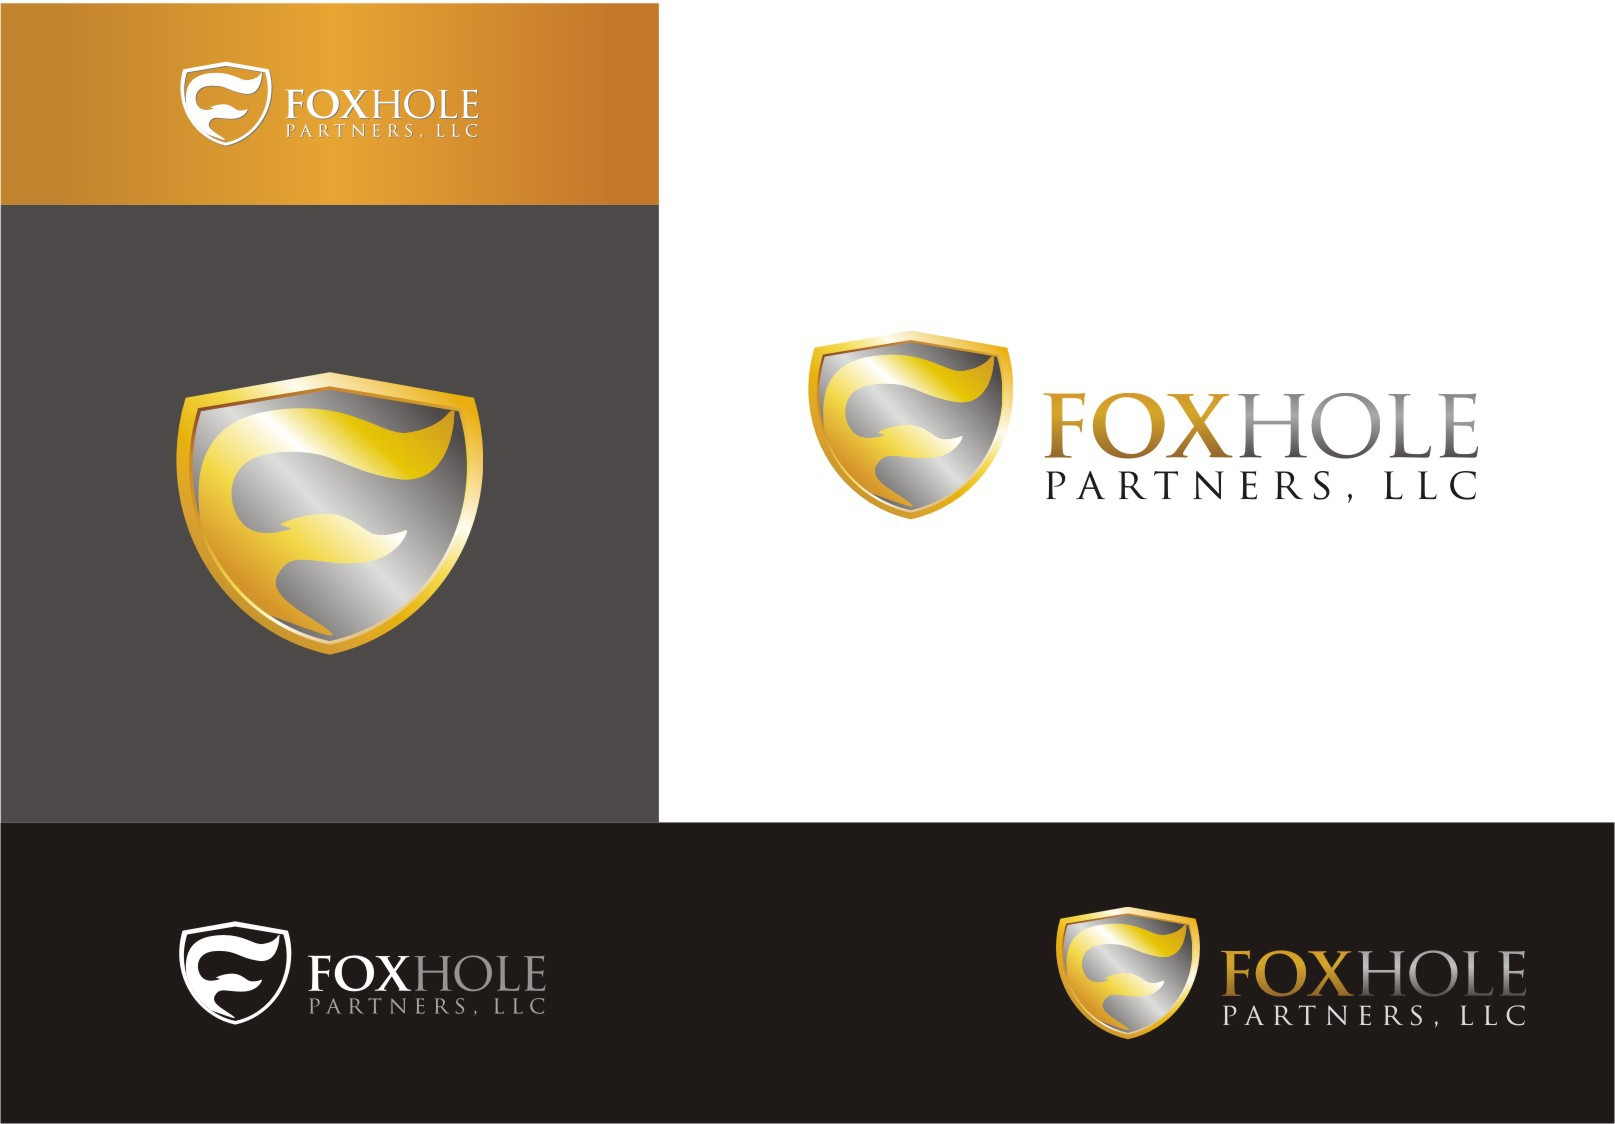 New logo wanted for Foxhole Partners, LLC